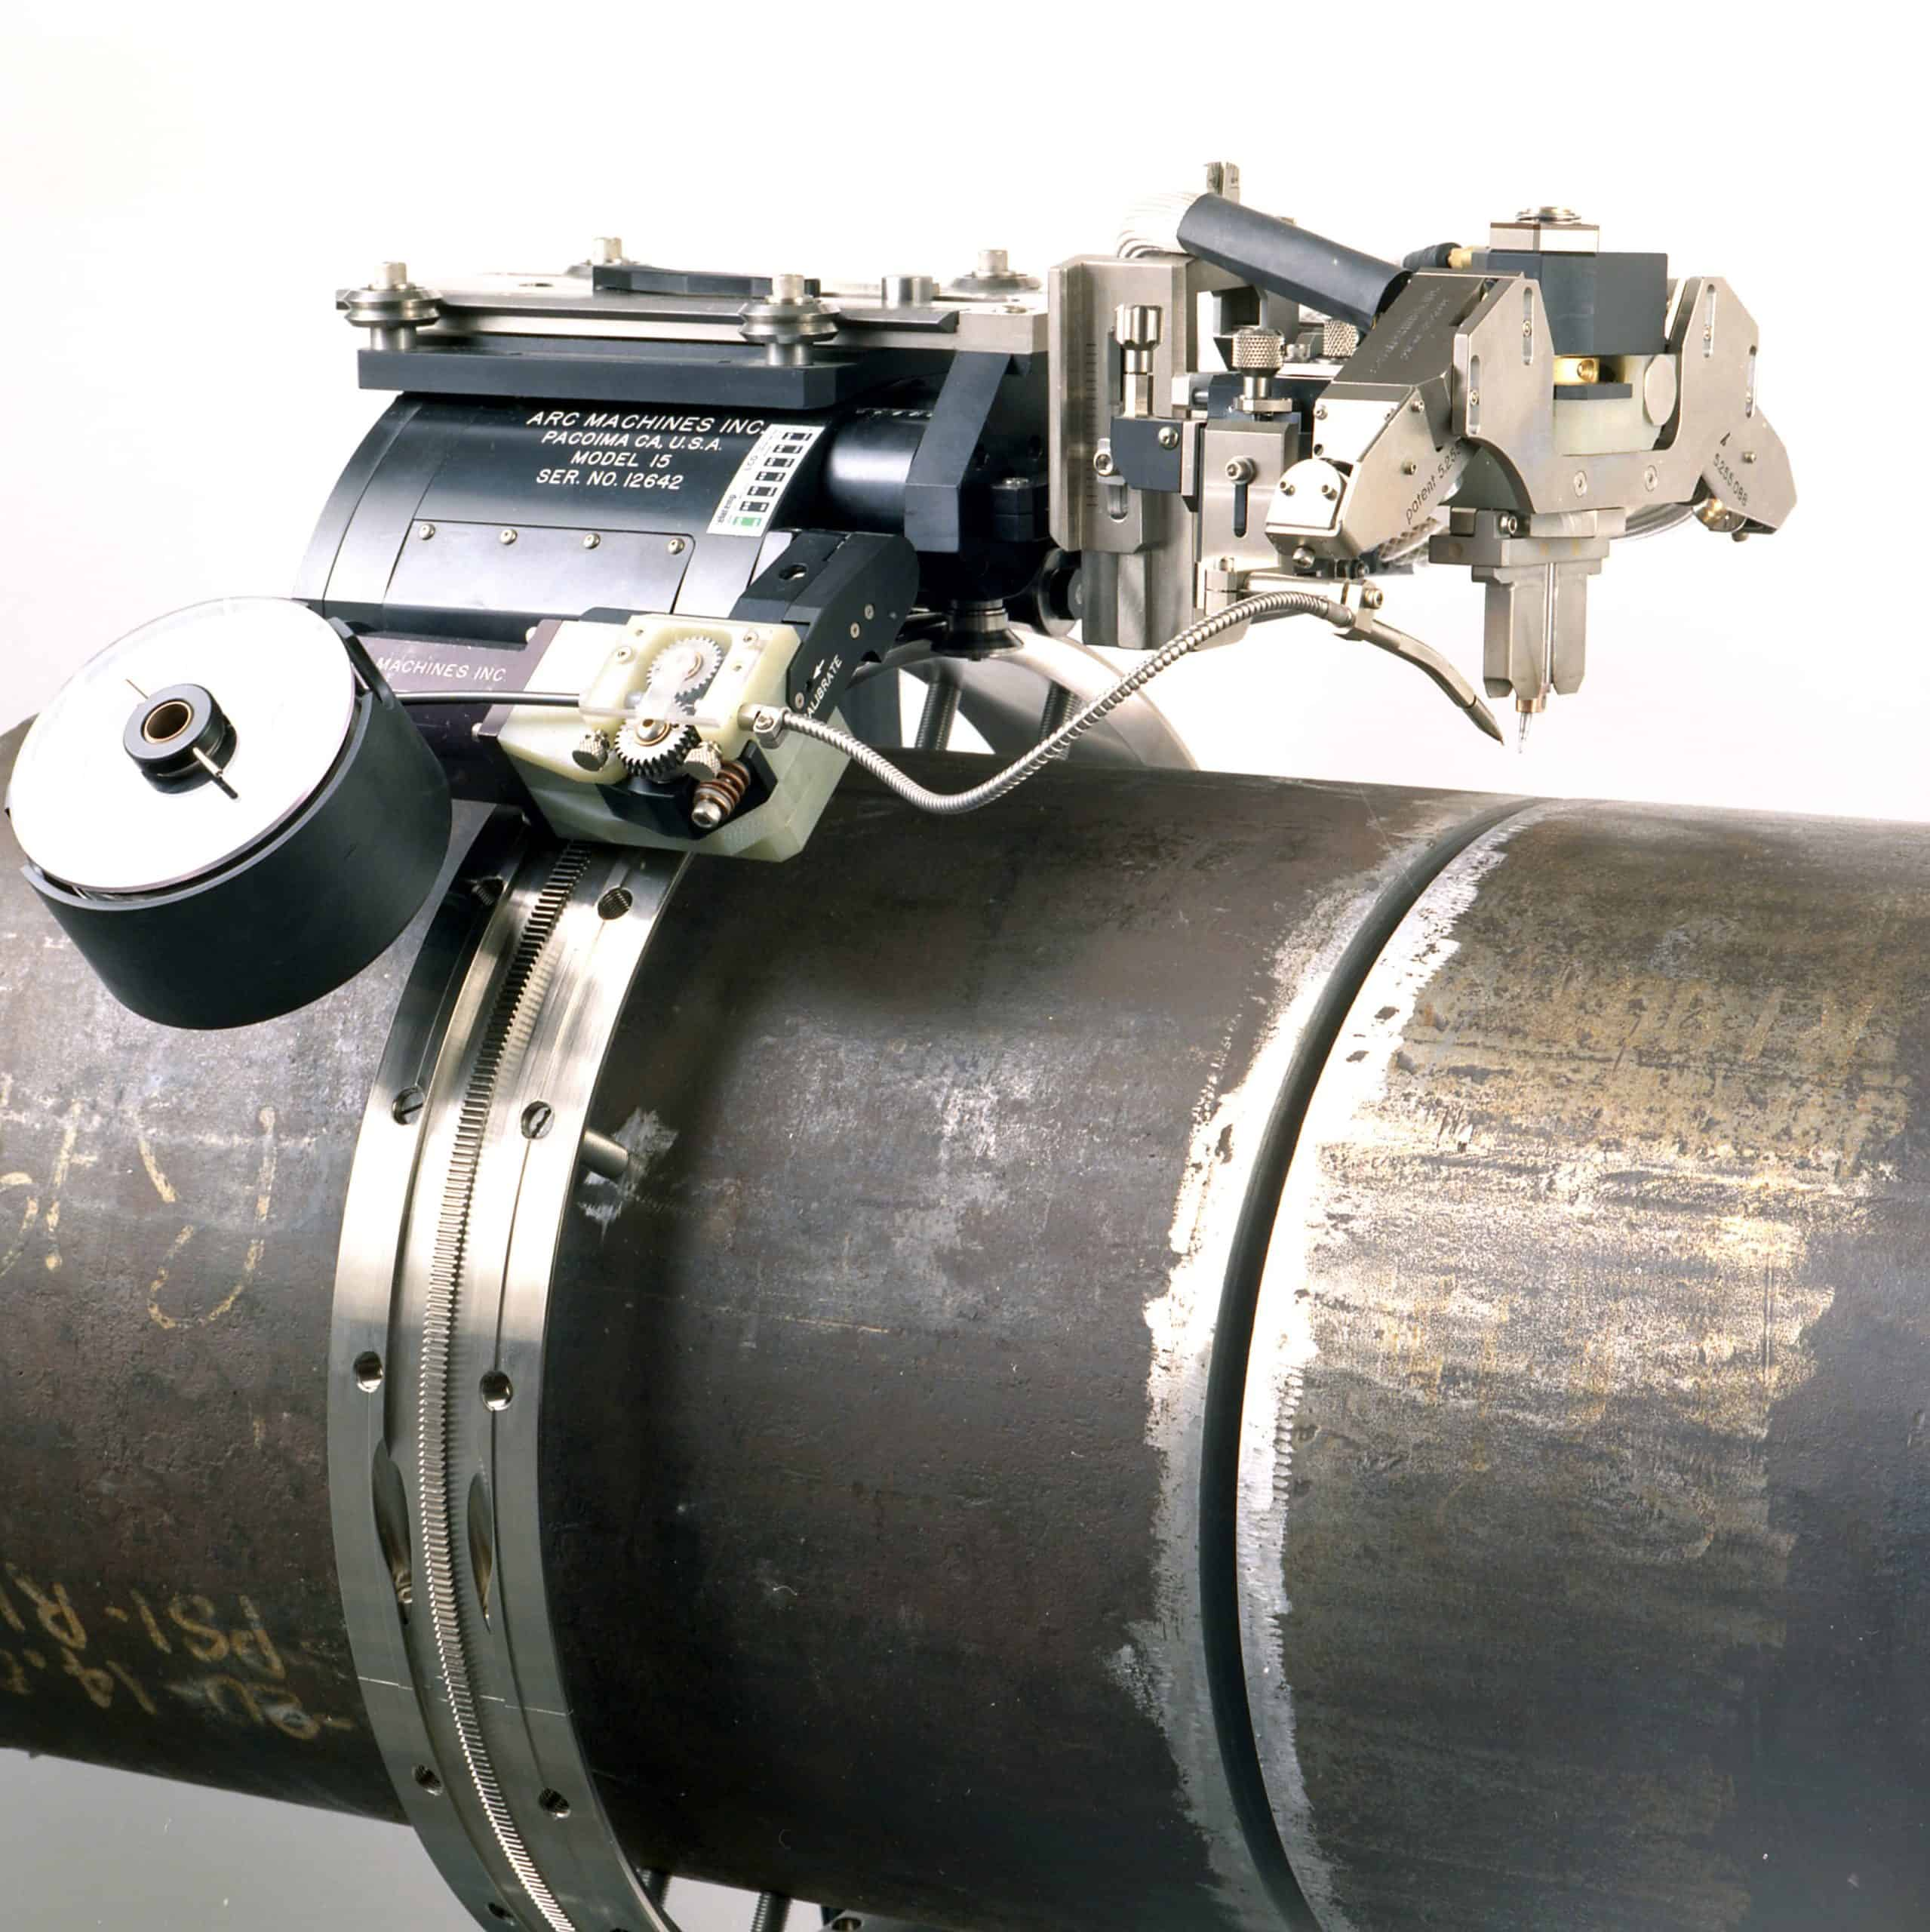 Big Bore Pipe Welding: Choosing Orbital Welding Systems for Large Diameter Piping